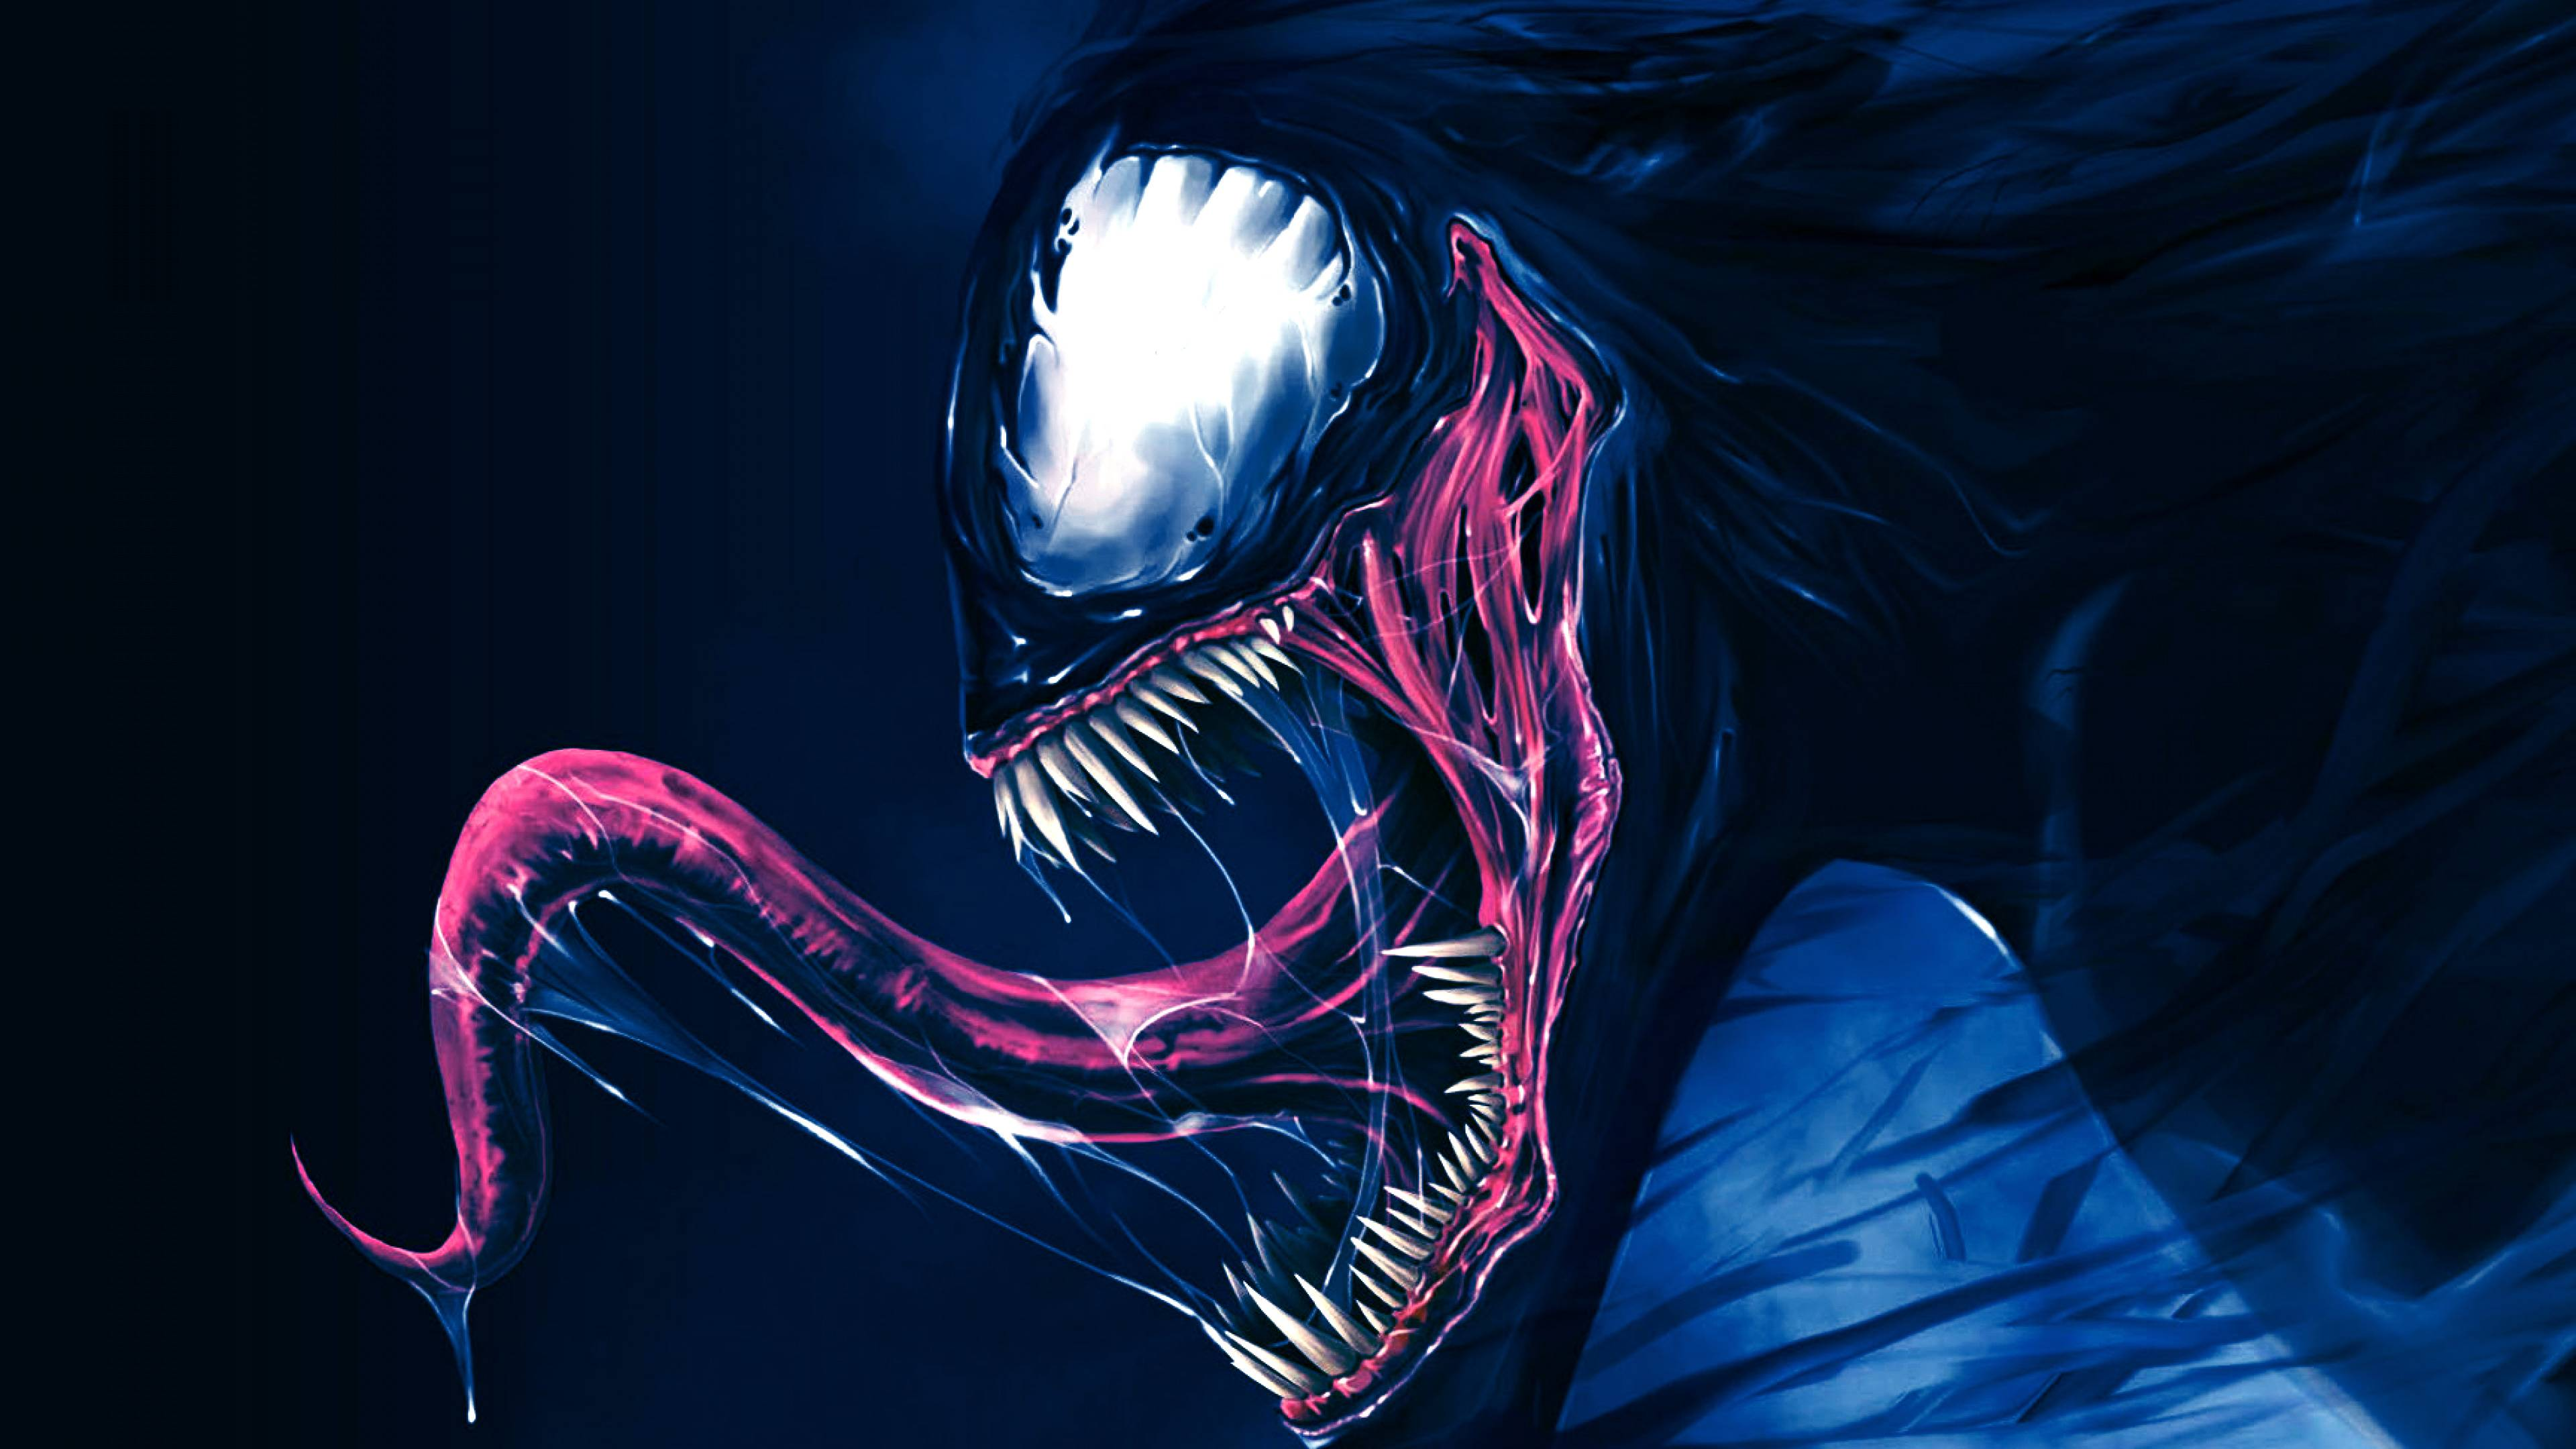 spiderman vs venom, eminem venom song download